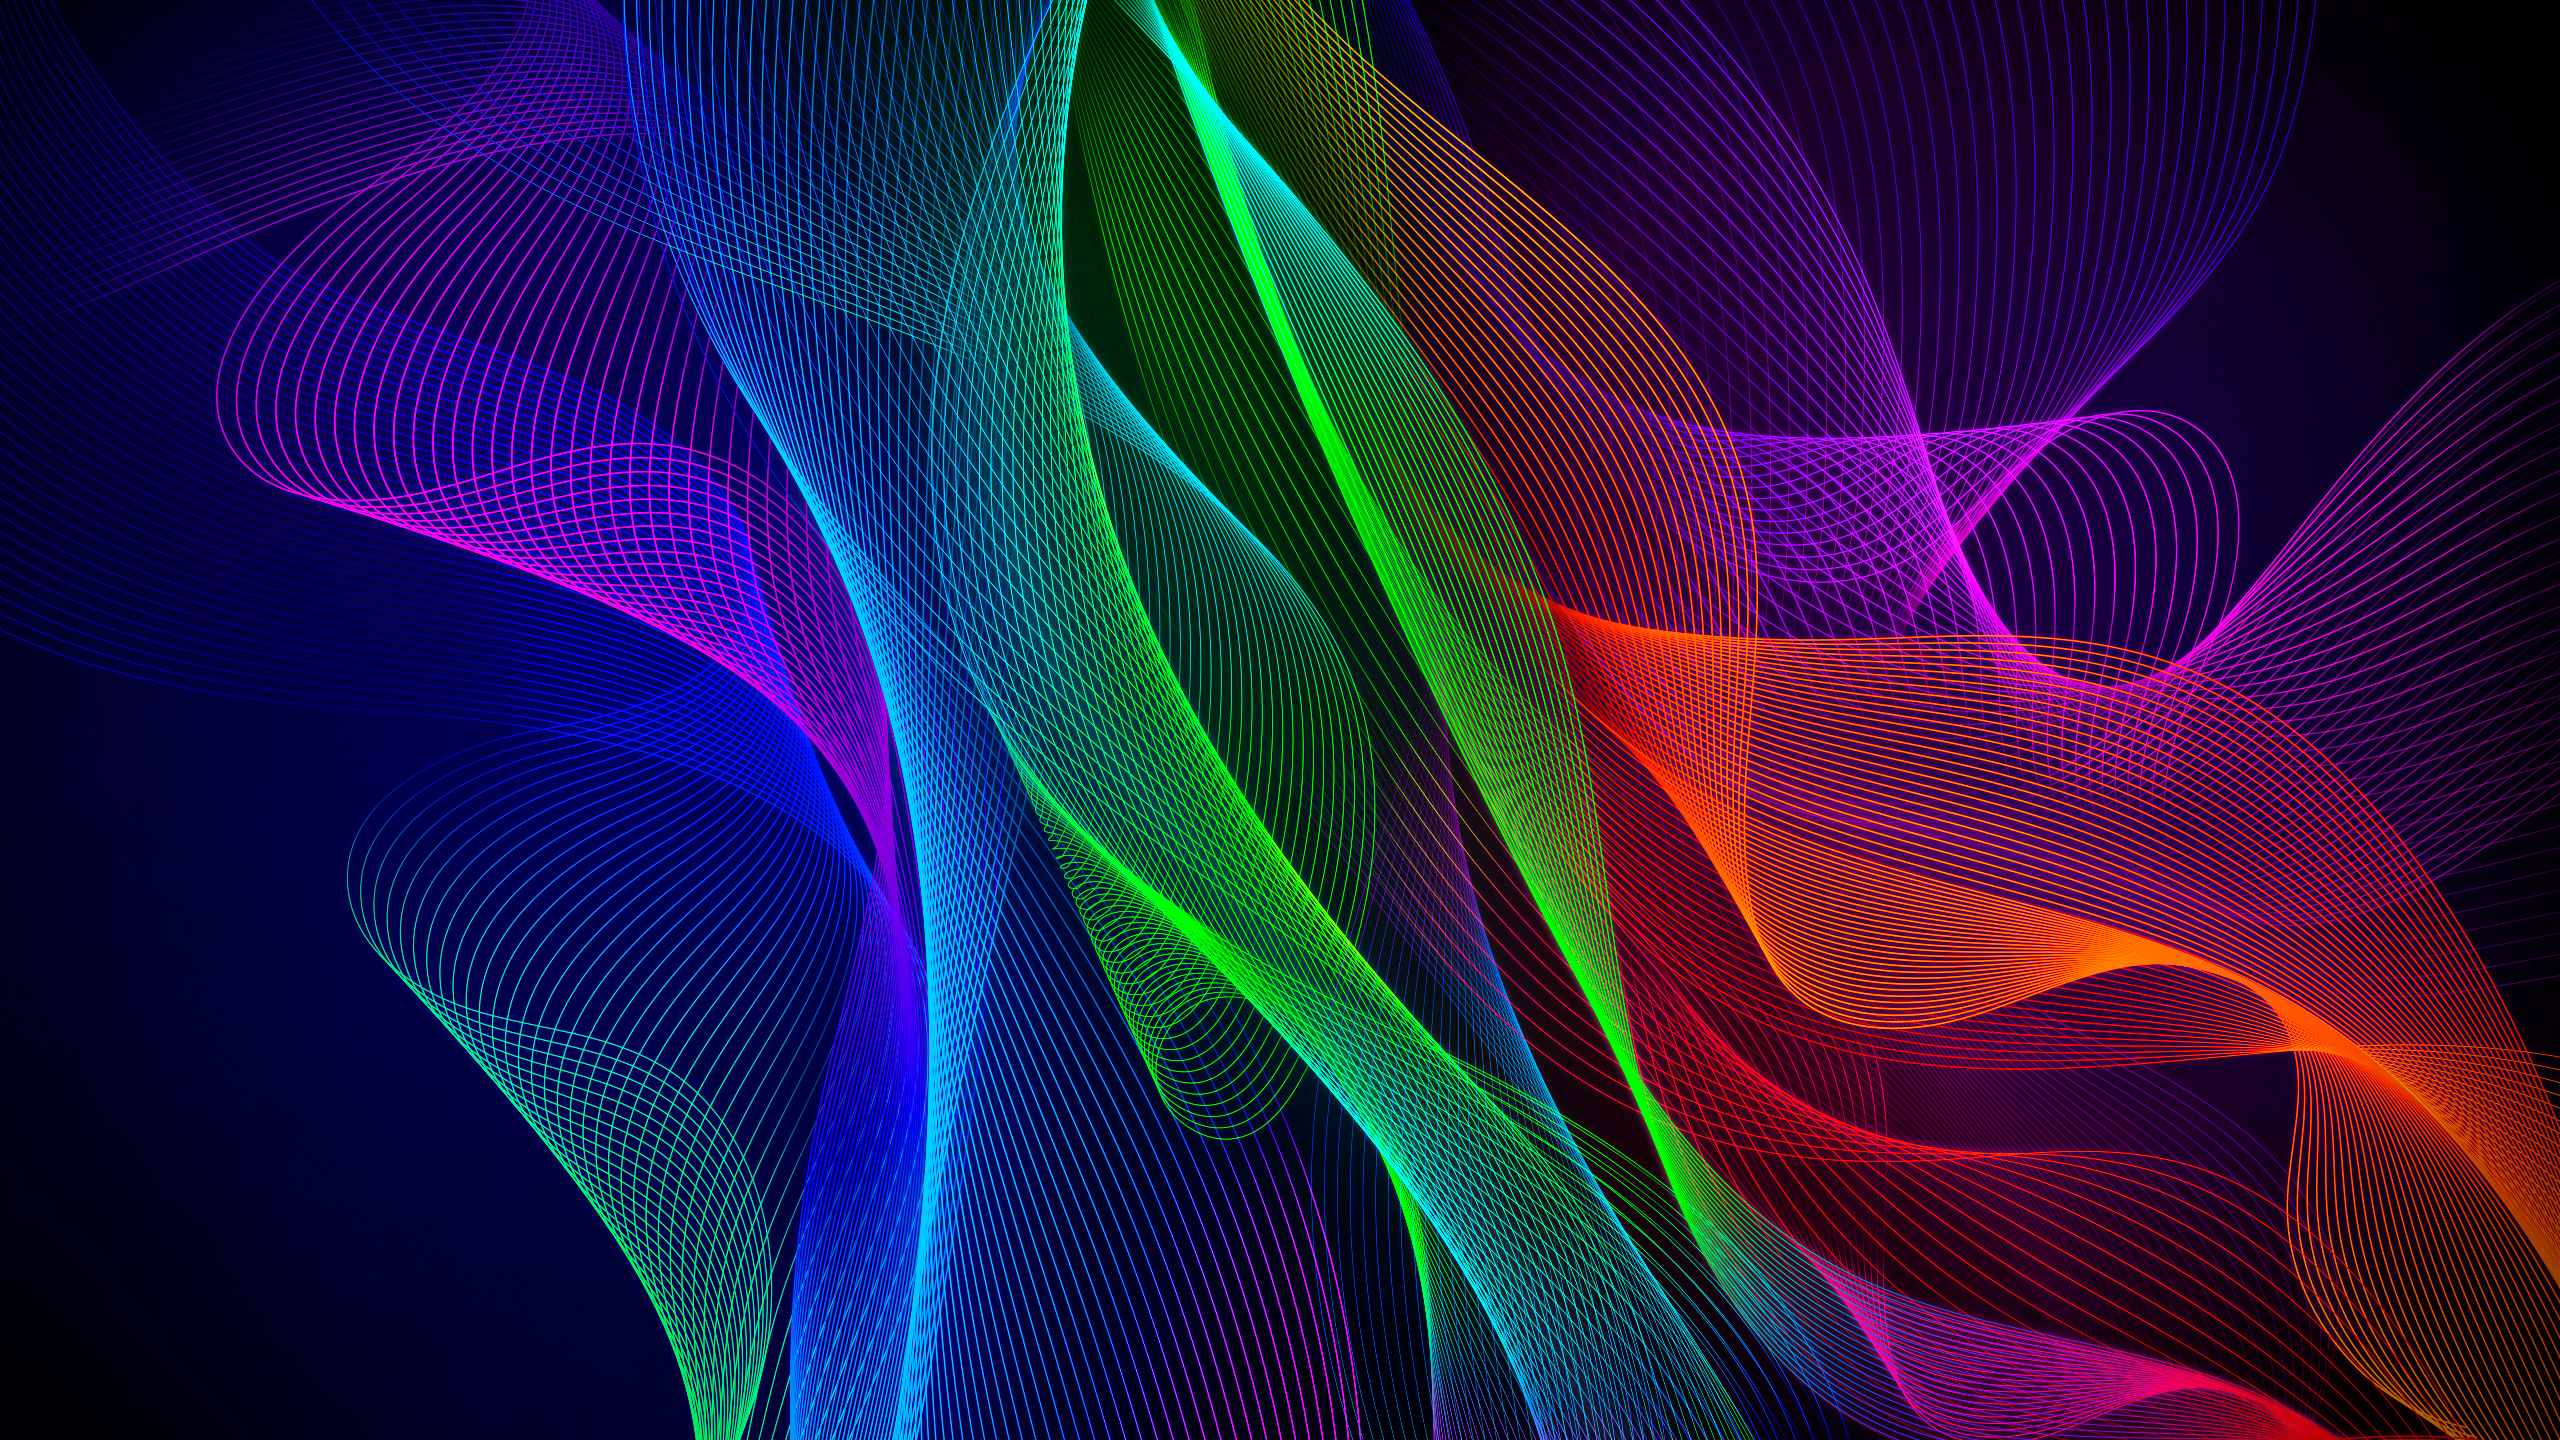 Colorful Abstract Razer Phone Wallpapers | Wallpapers HD